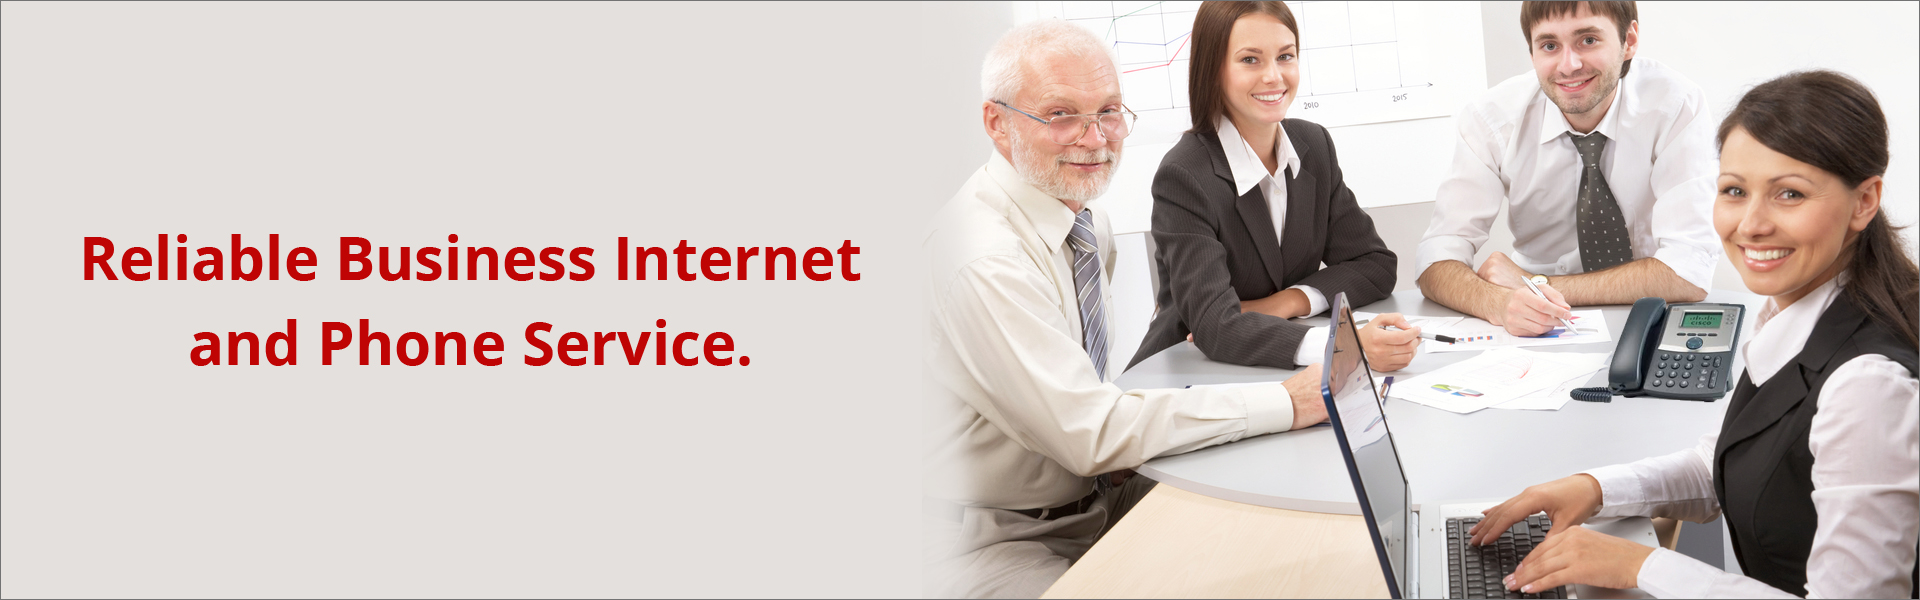 Reliable Business Internet and Phone Services